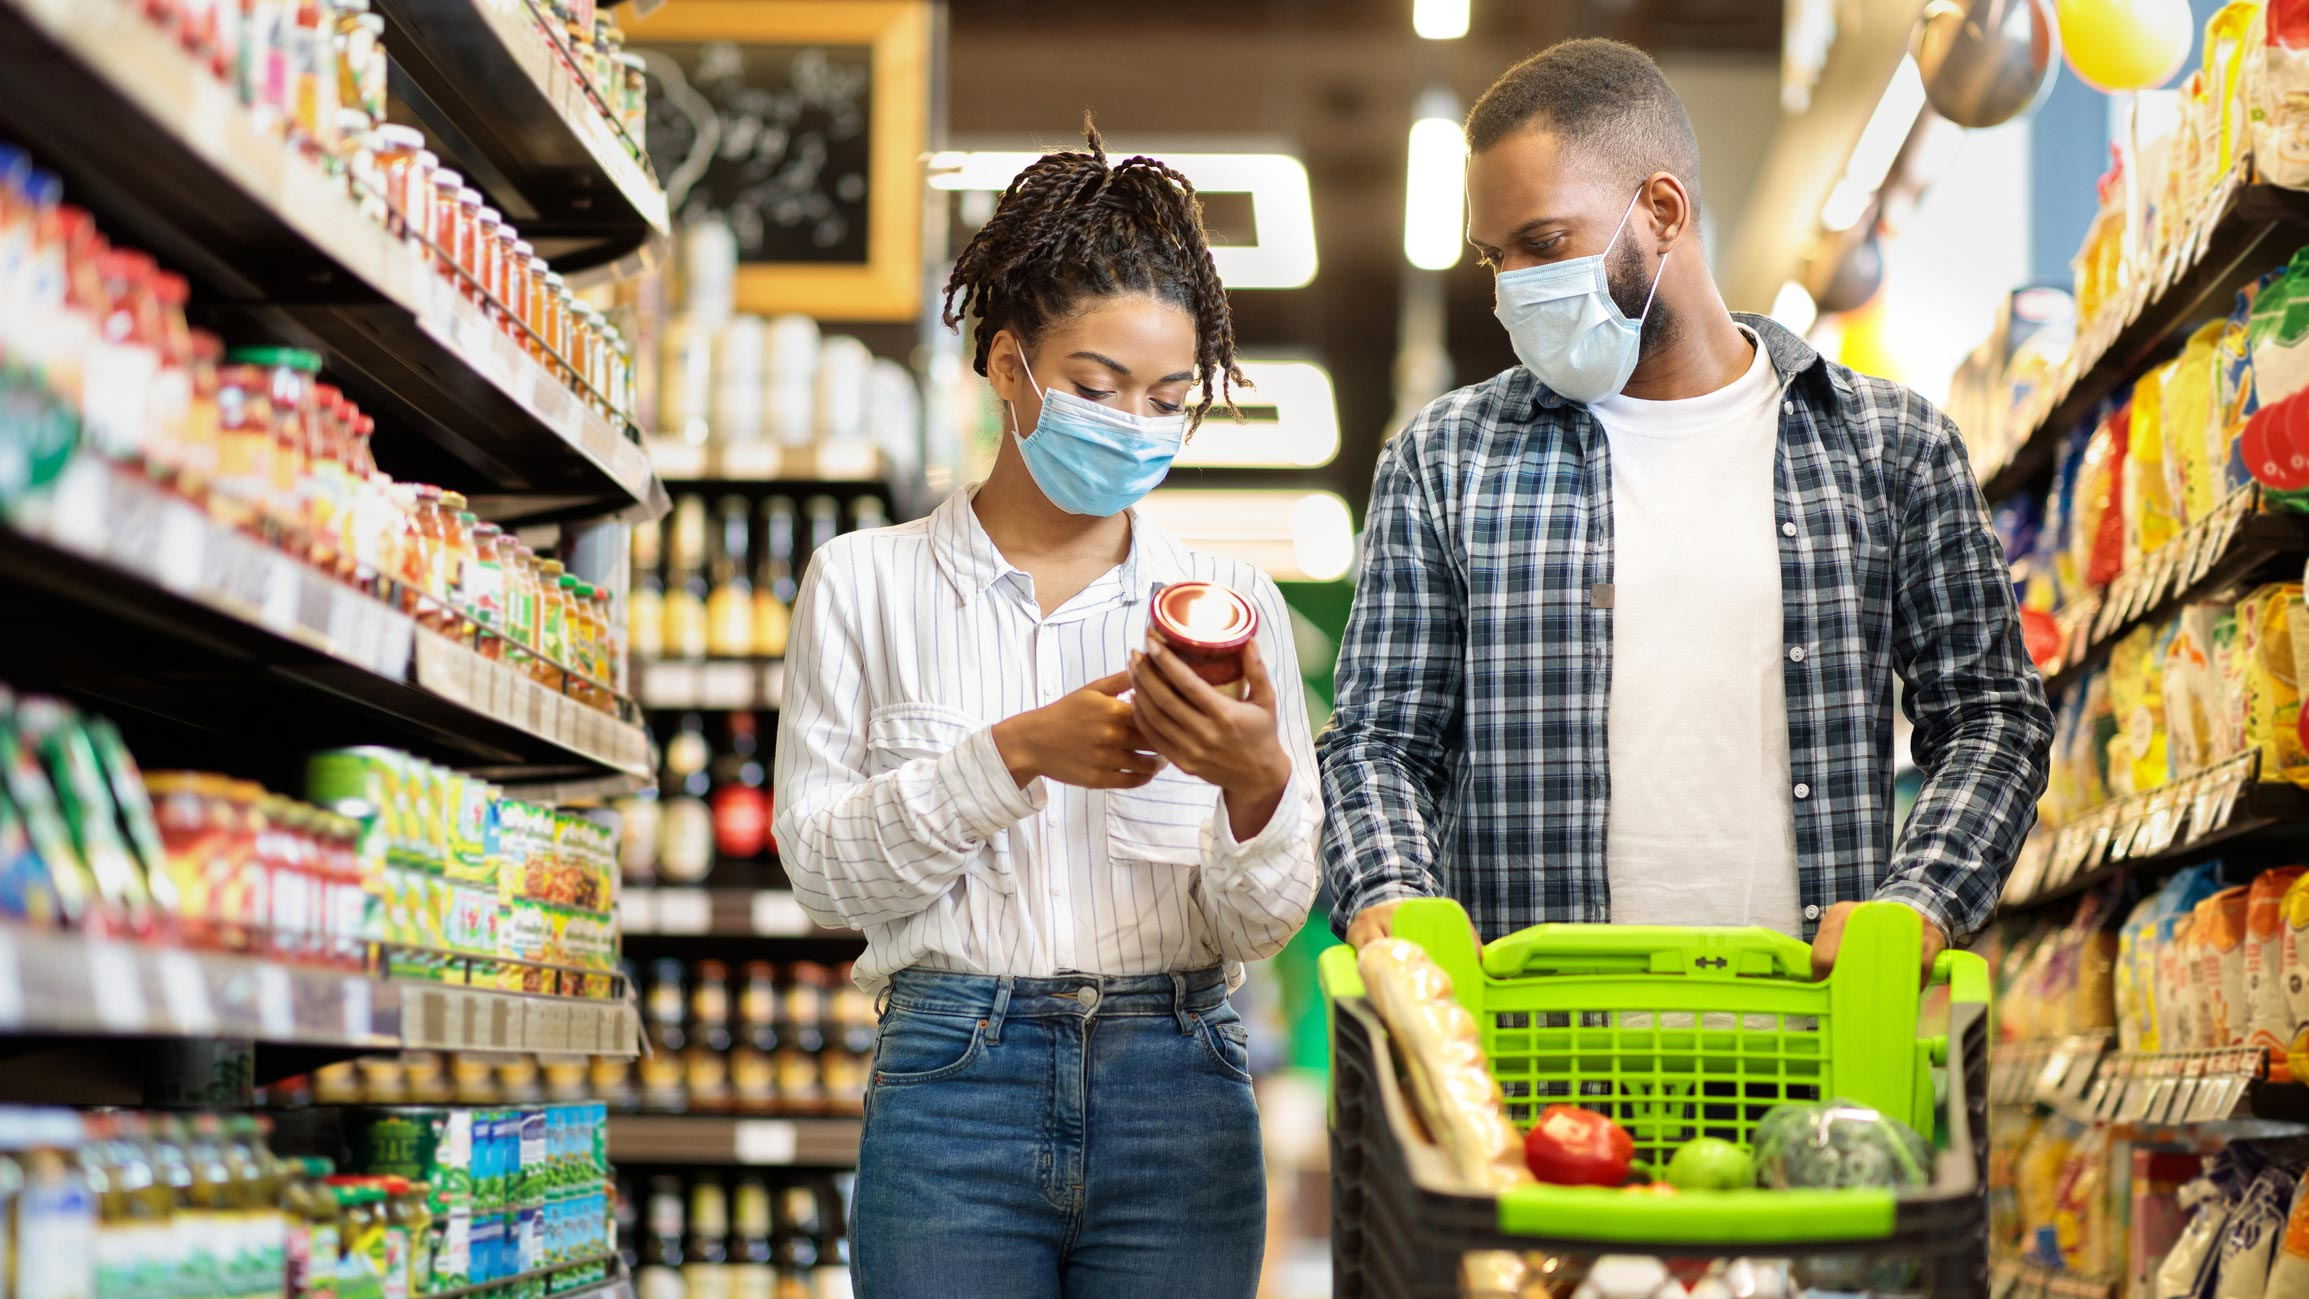 Two adults wearing masks and grocery shopping